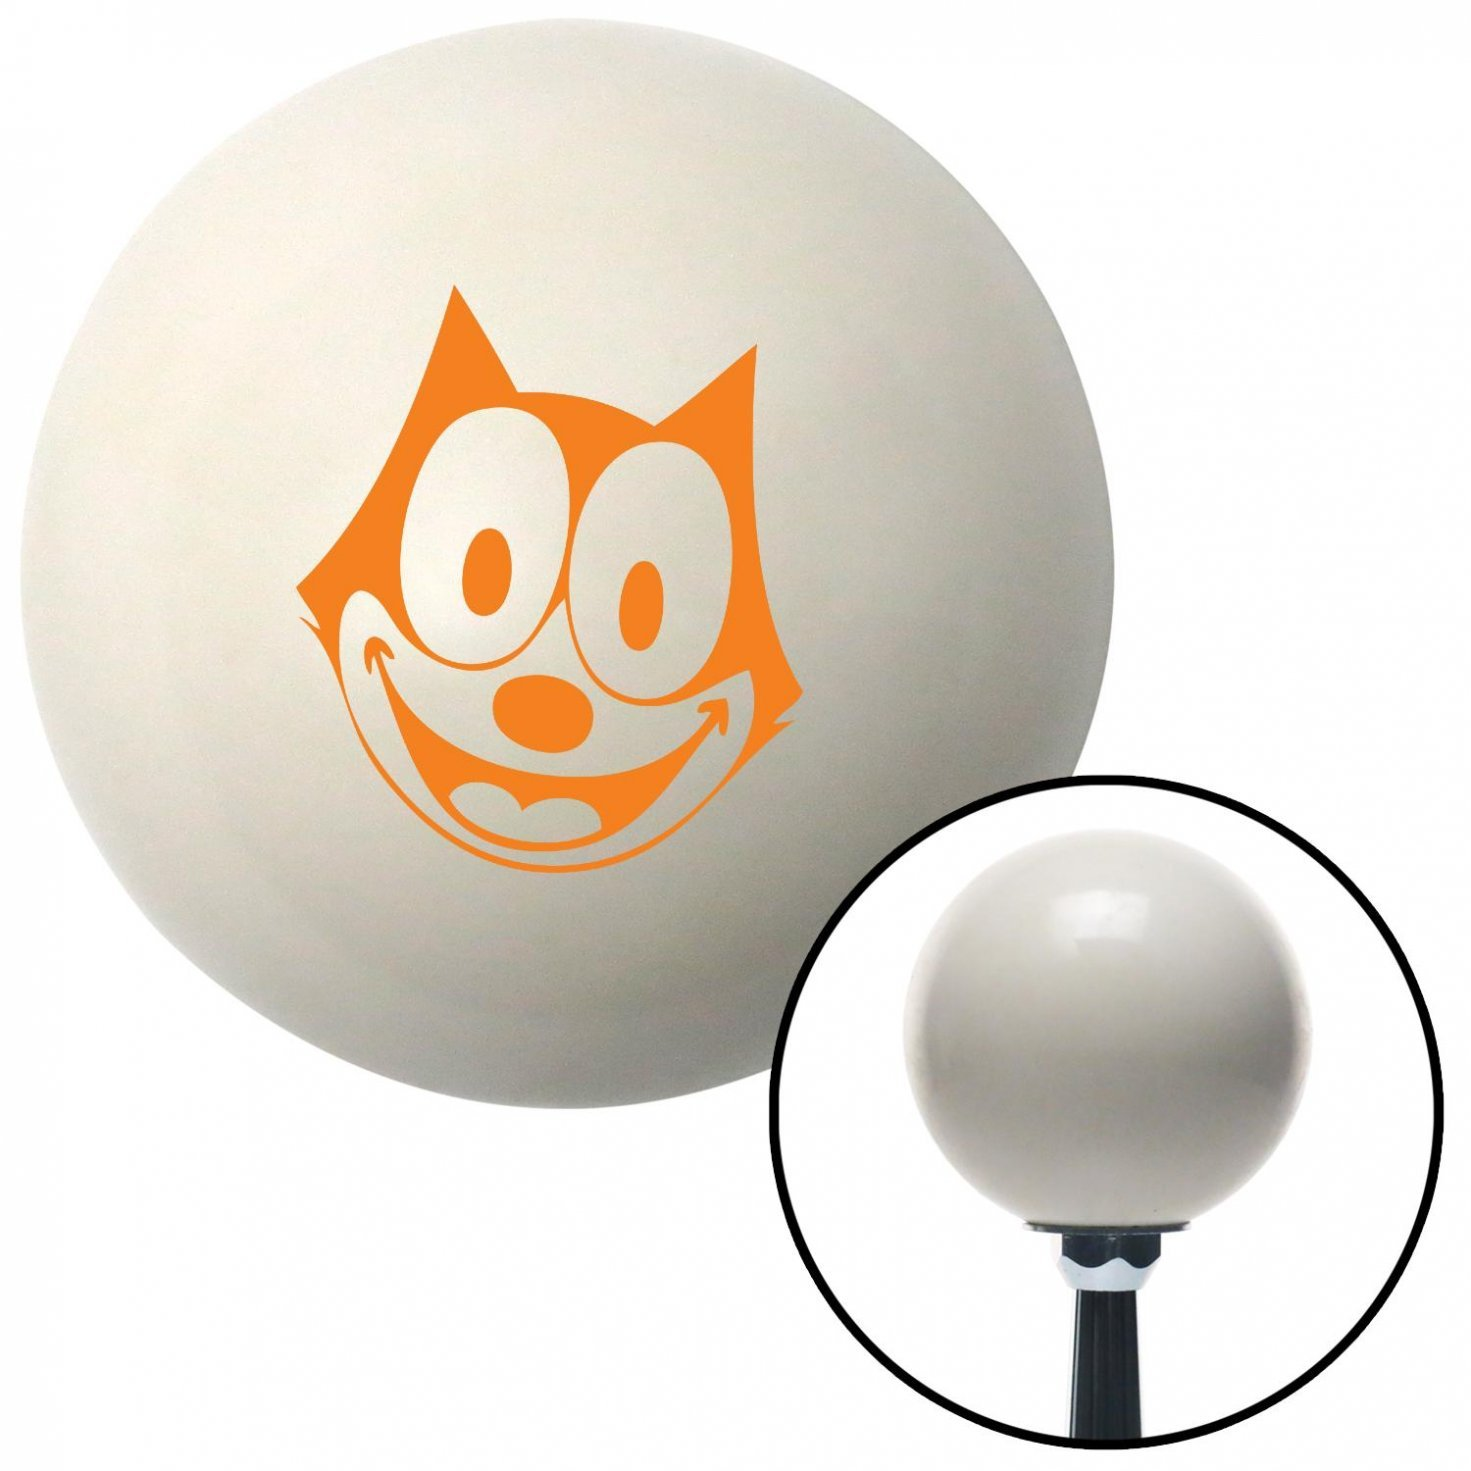 Orange Felix The Cat Smiling American Shifter 42196 Ivory Shift Knob with 16mm x 1.5 Insert